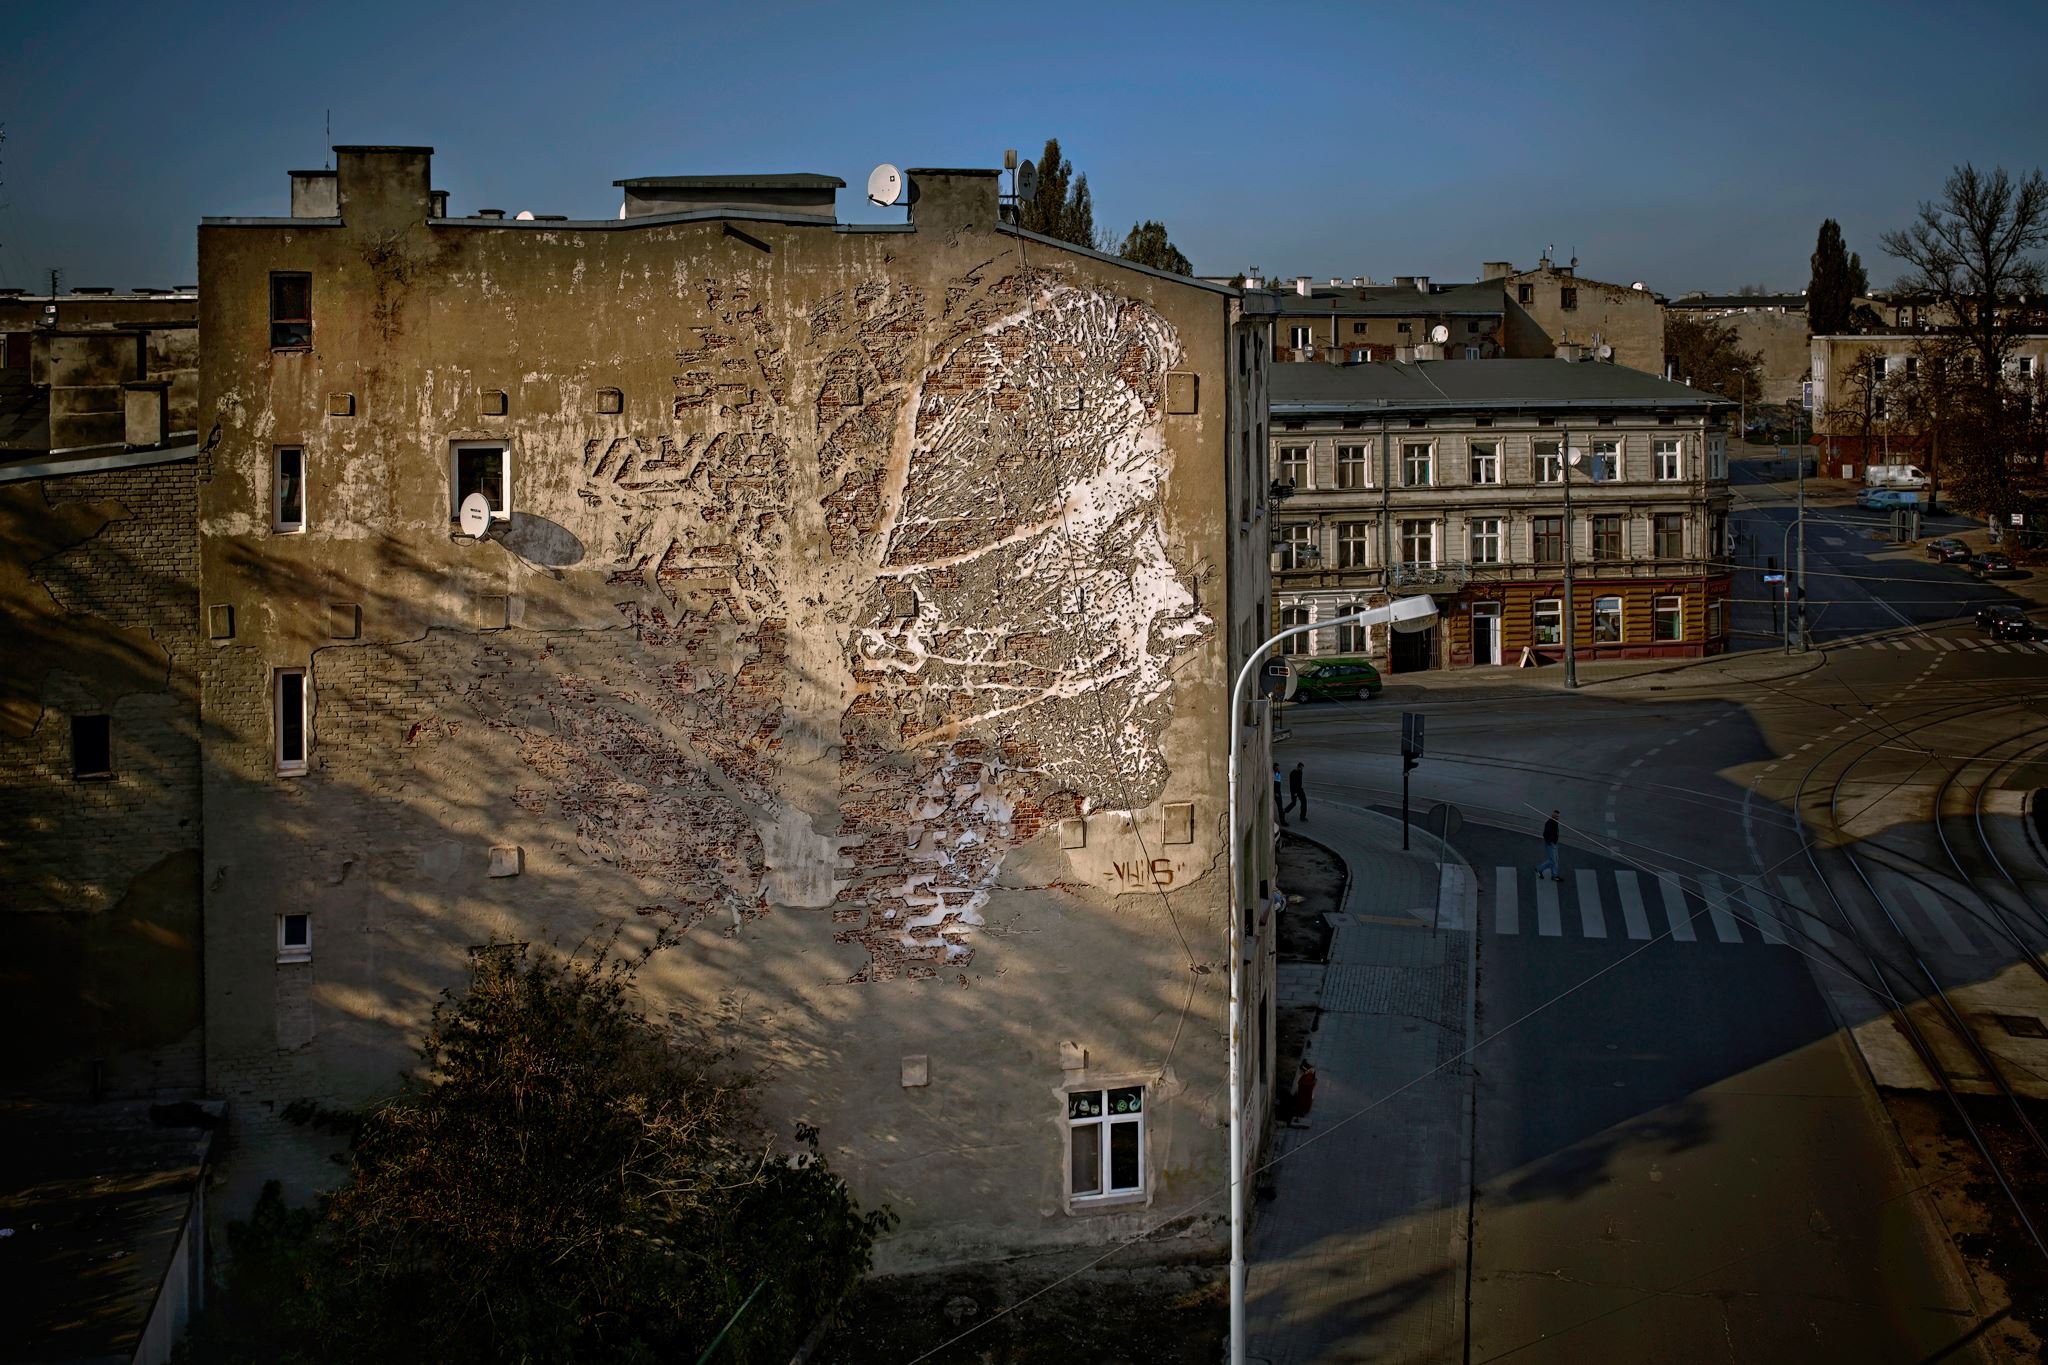 vhils-new-mural-for-galeria-urban-forms-10